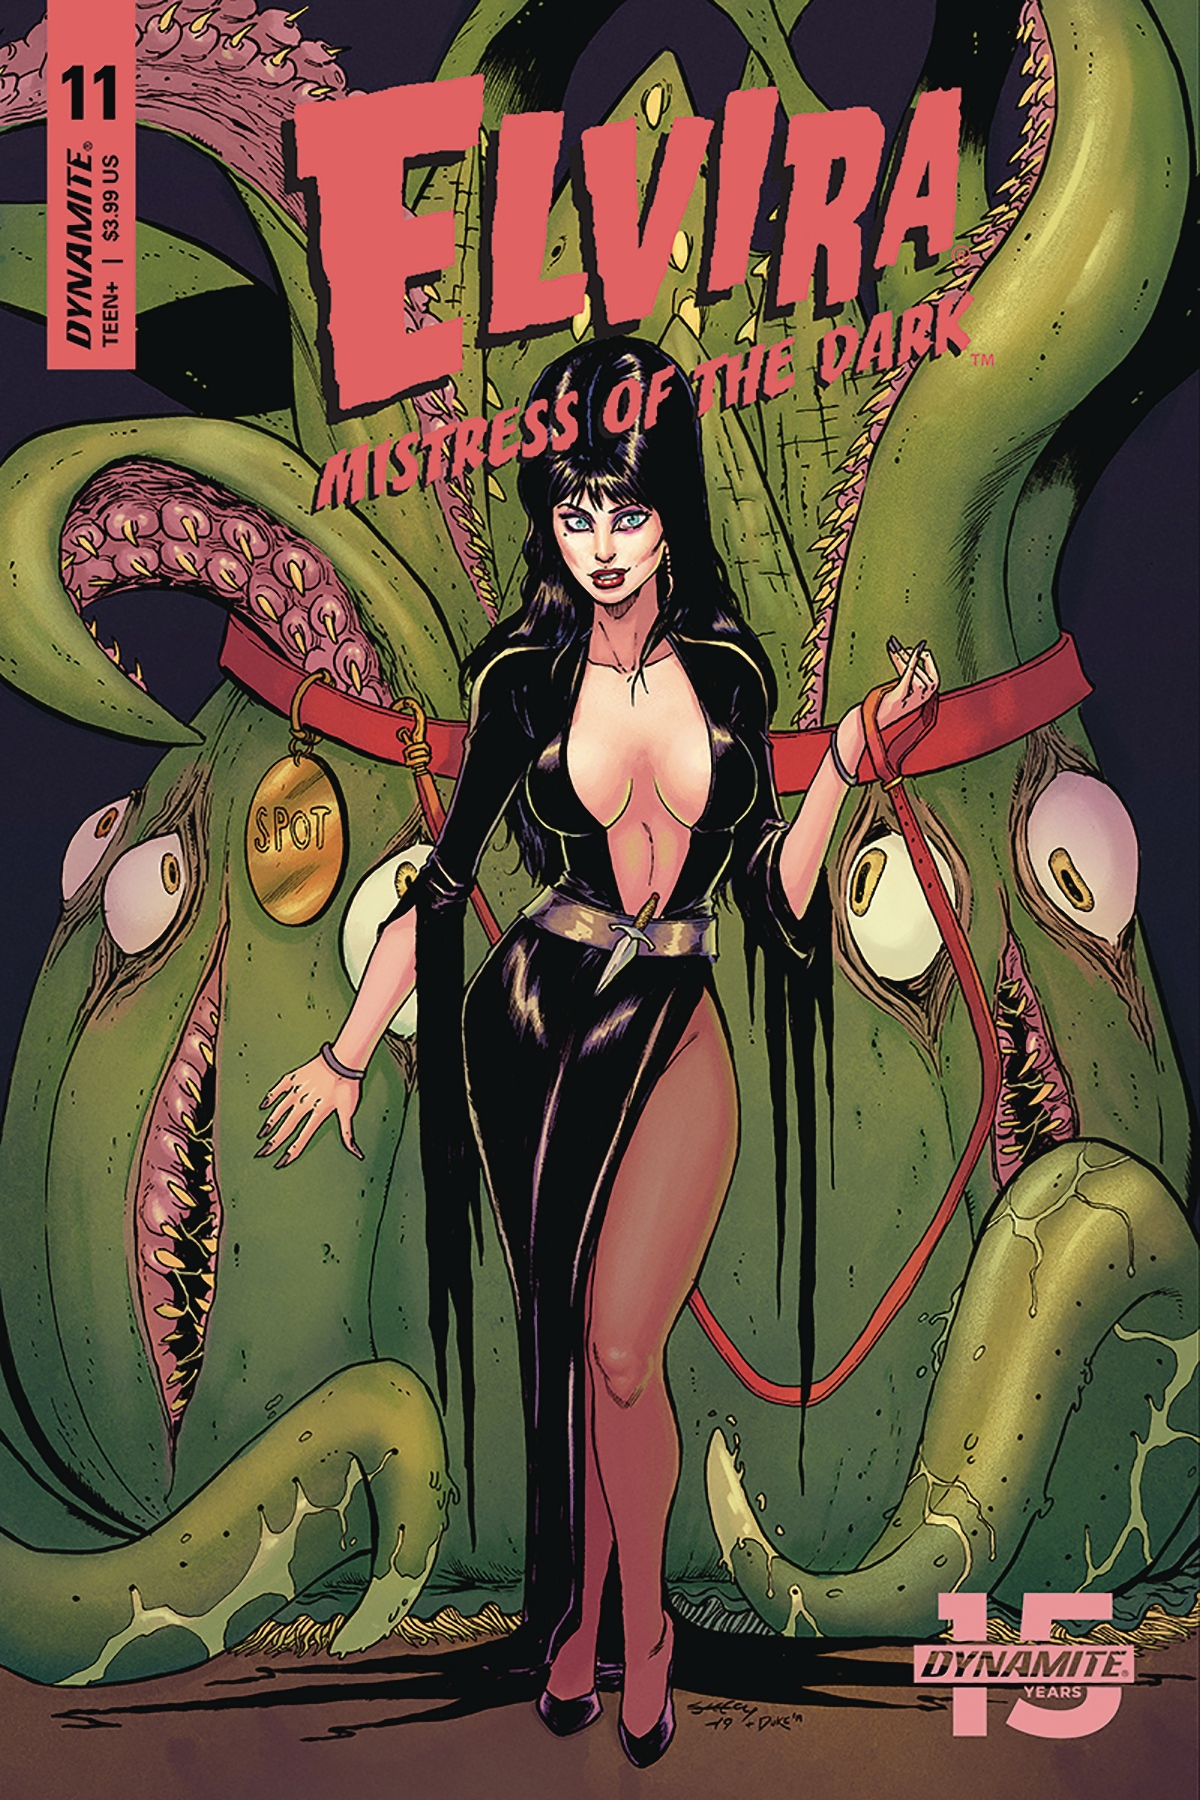 ELVIRA MISTRESS OF DARK #11 CVR A SEELEY